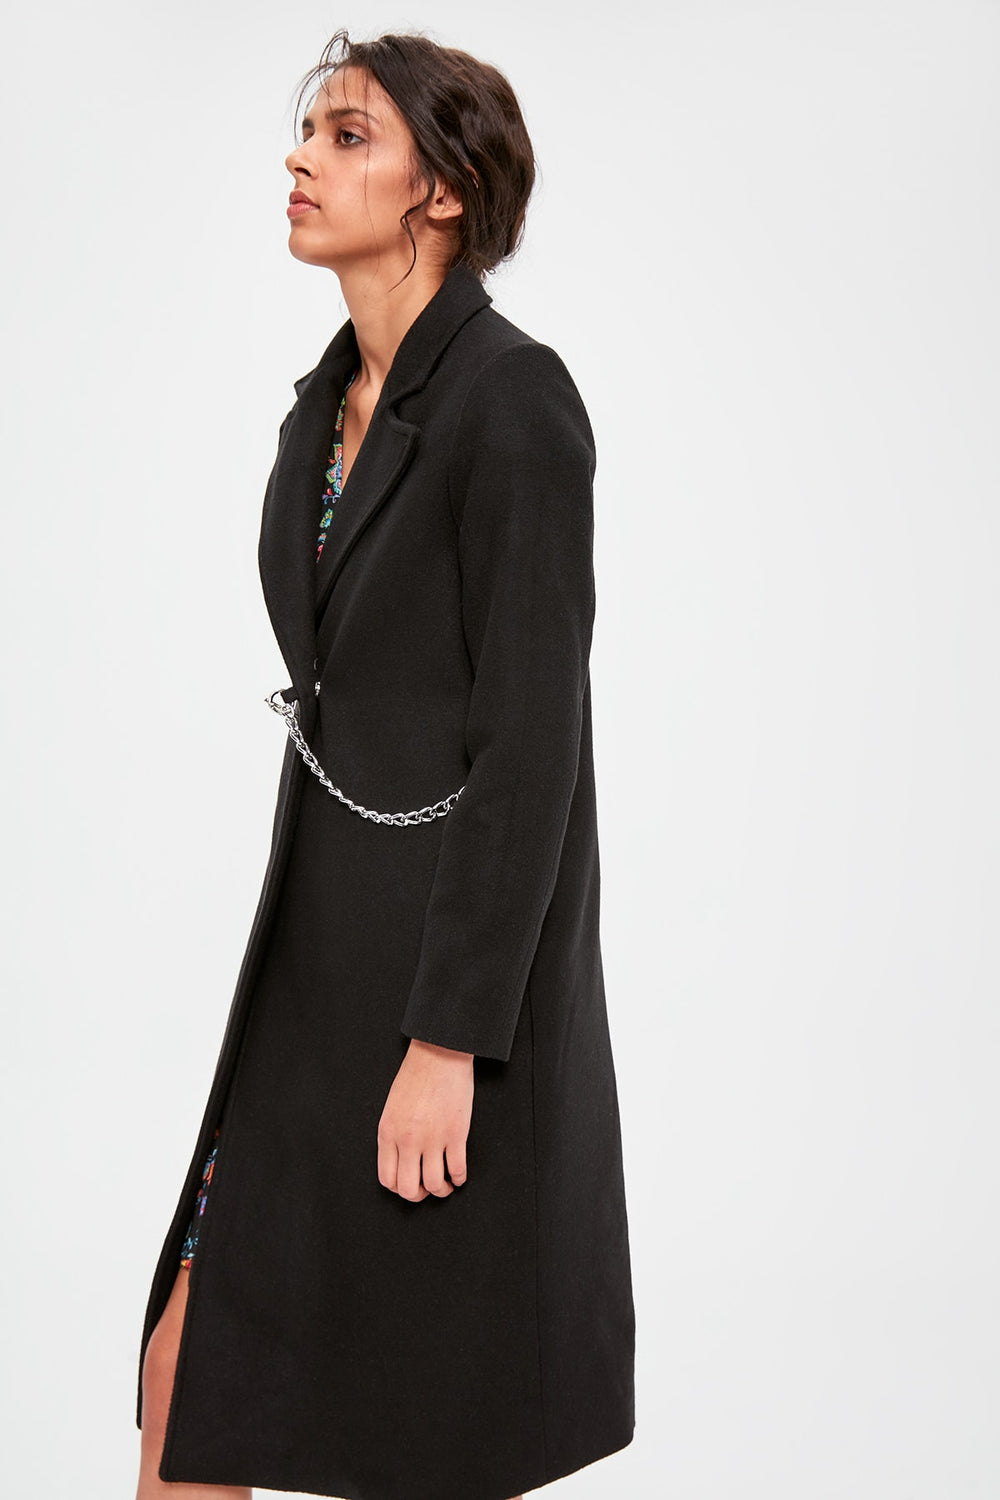 Black Chain Detail Stamp Coat - Top Maxy